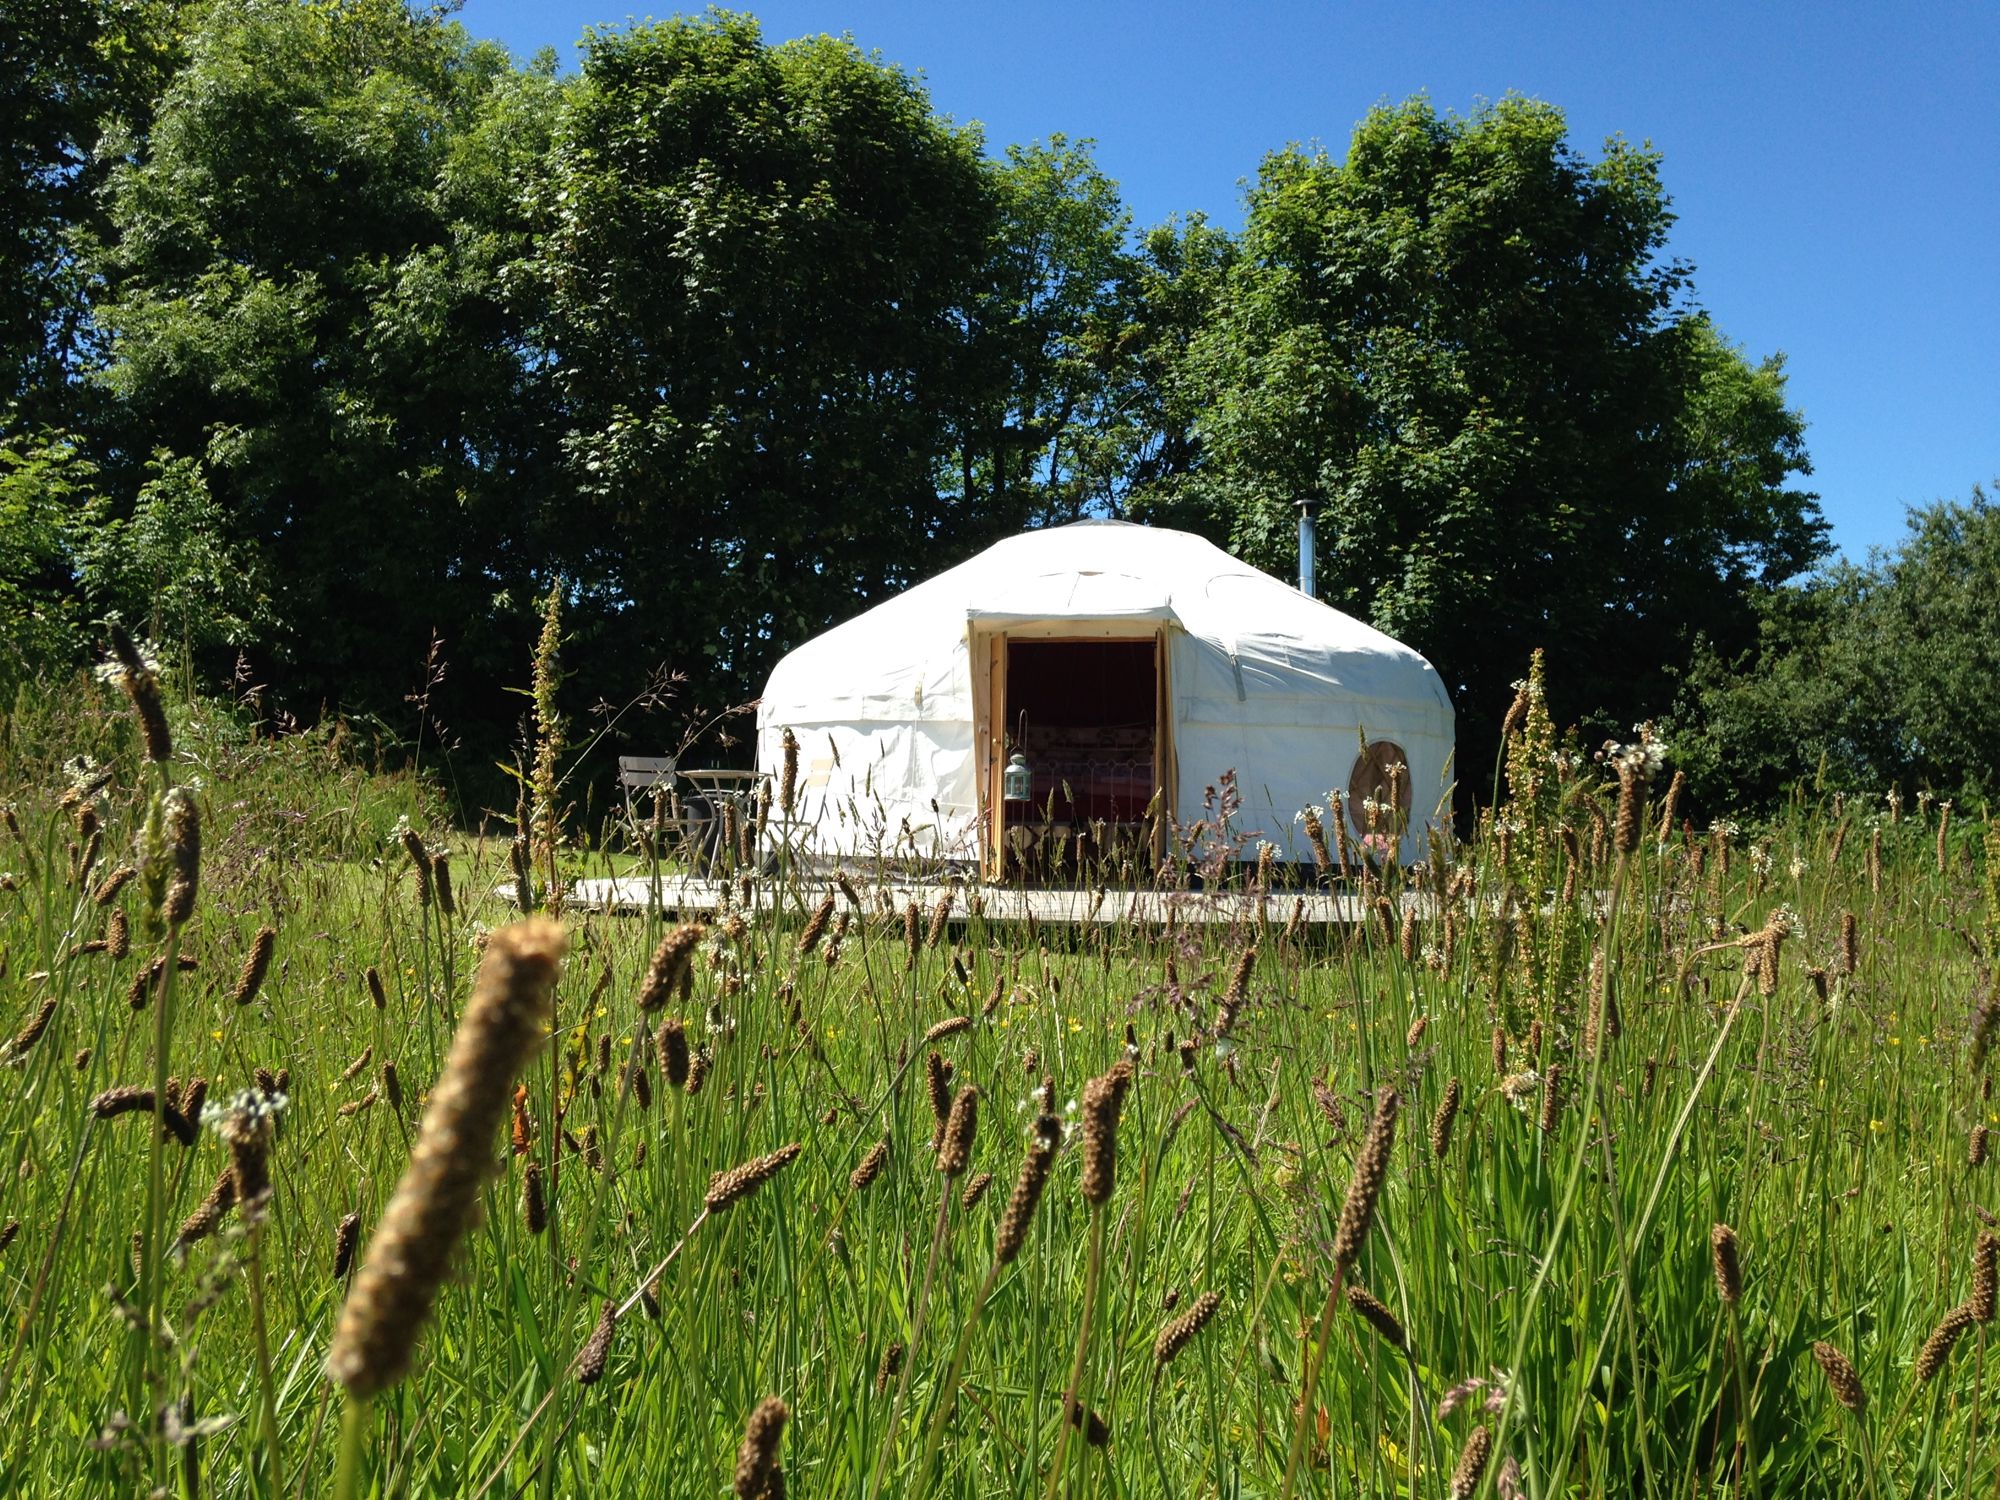 Yurt-tastic, Cornish retreat...A ger-eat place to catch up on your chilling.